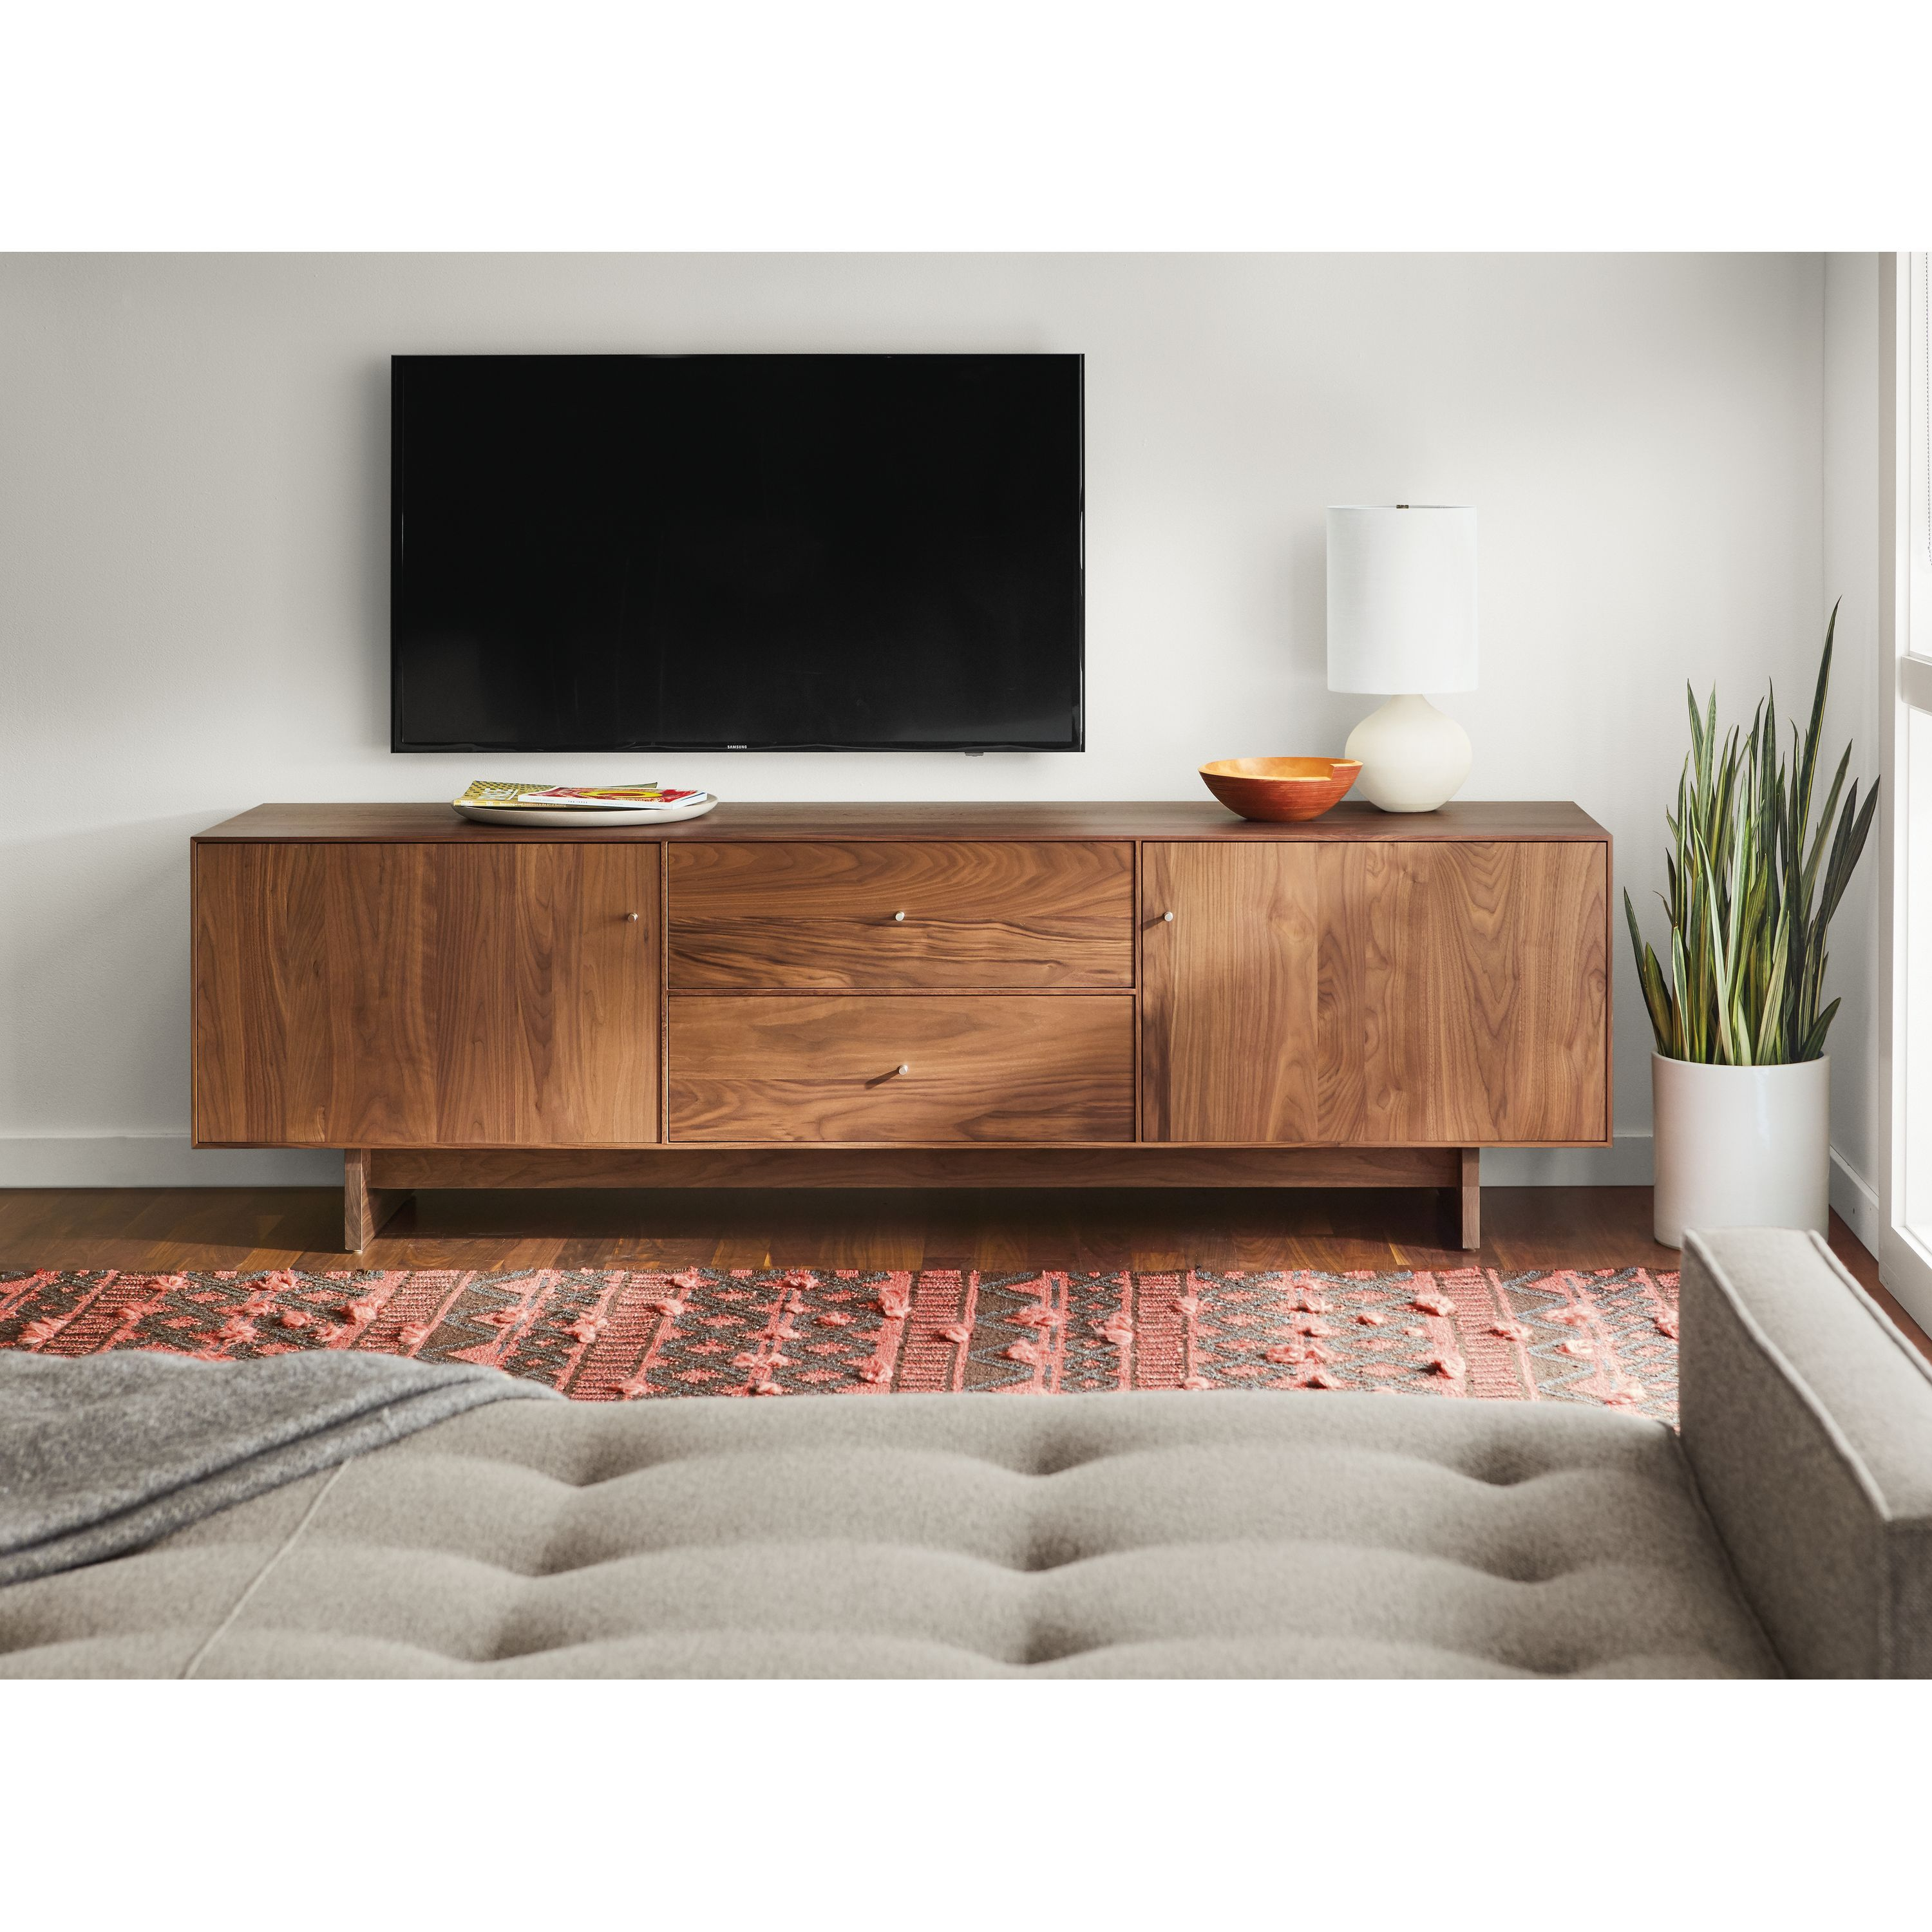 Reese Daybed Modern Chaises Daybeds Modern Living Room Furniture Room Board In 2020 Modern Furniture Living Room Modern Media Cabinets Media Cabinet #wooden #cabinets #living #room